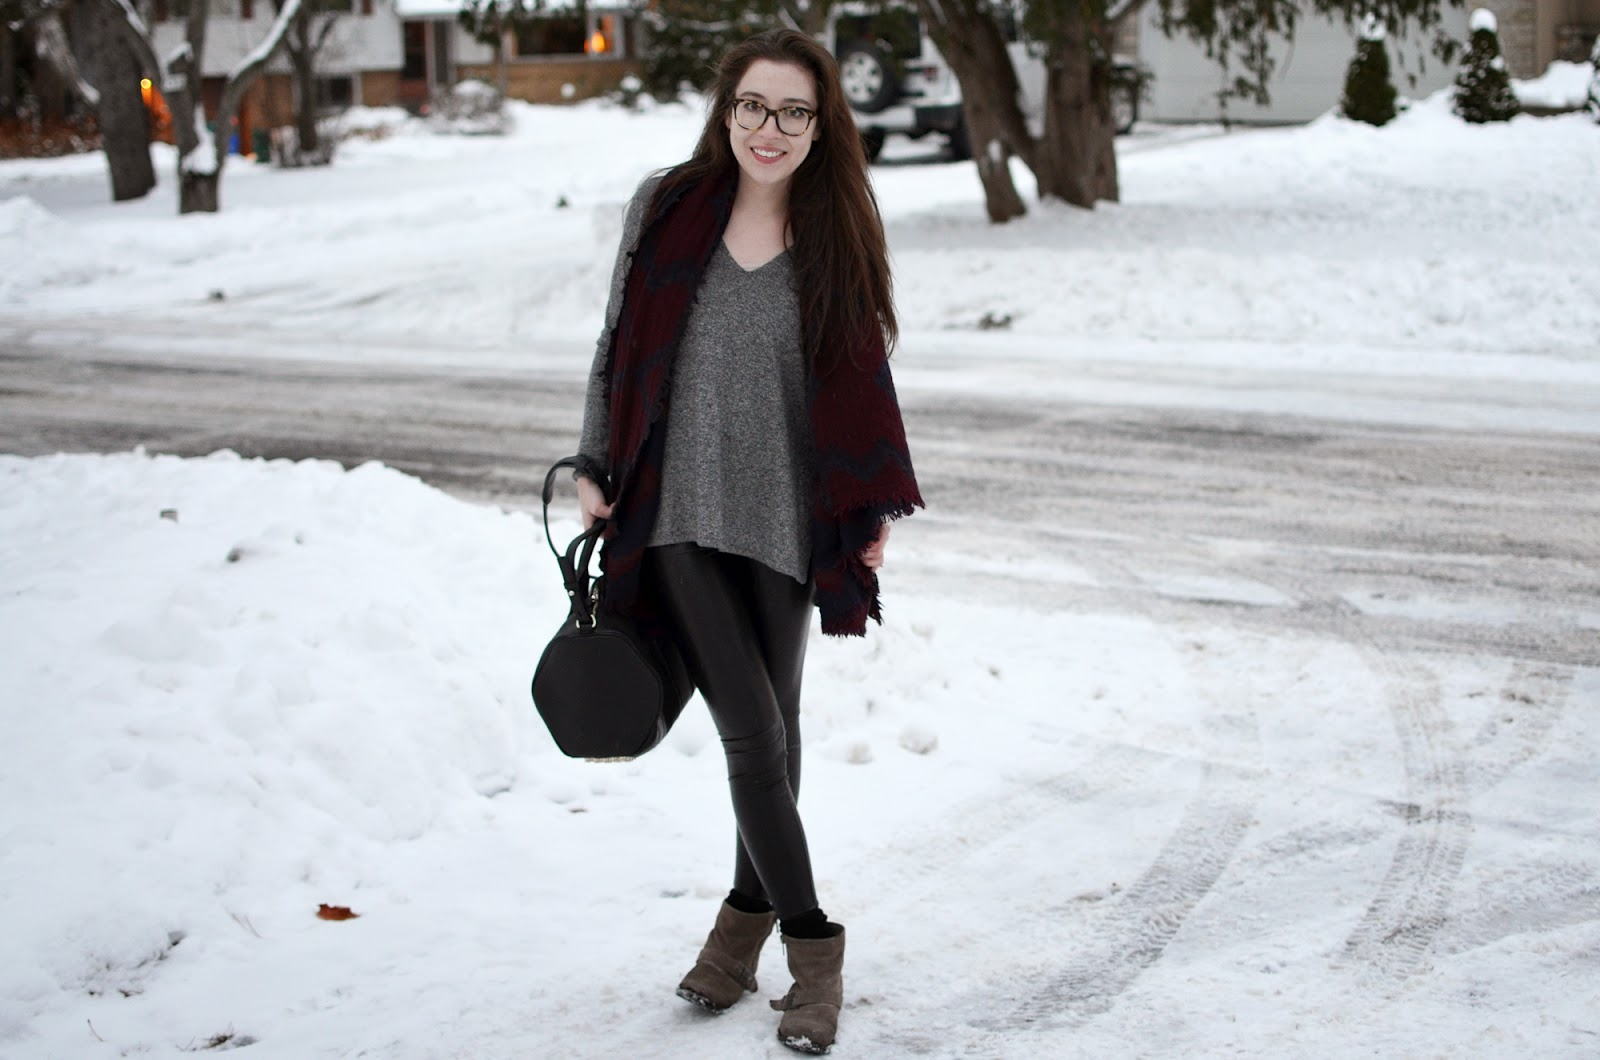 Winter OOTD ft. Aritzia Daria faux leather leggings, Erin sweater and blanket scarf